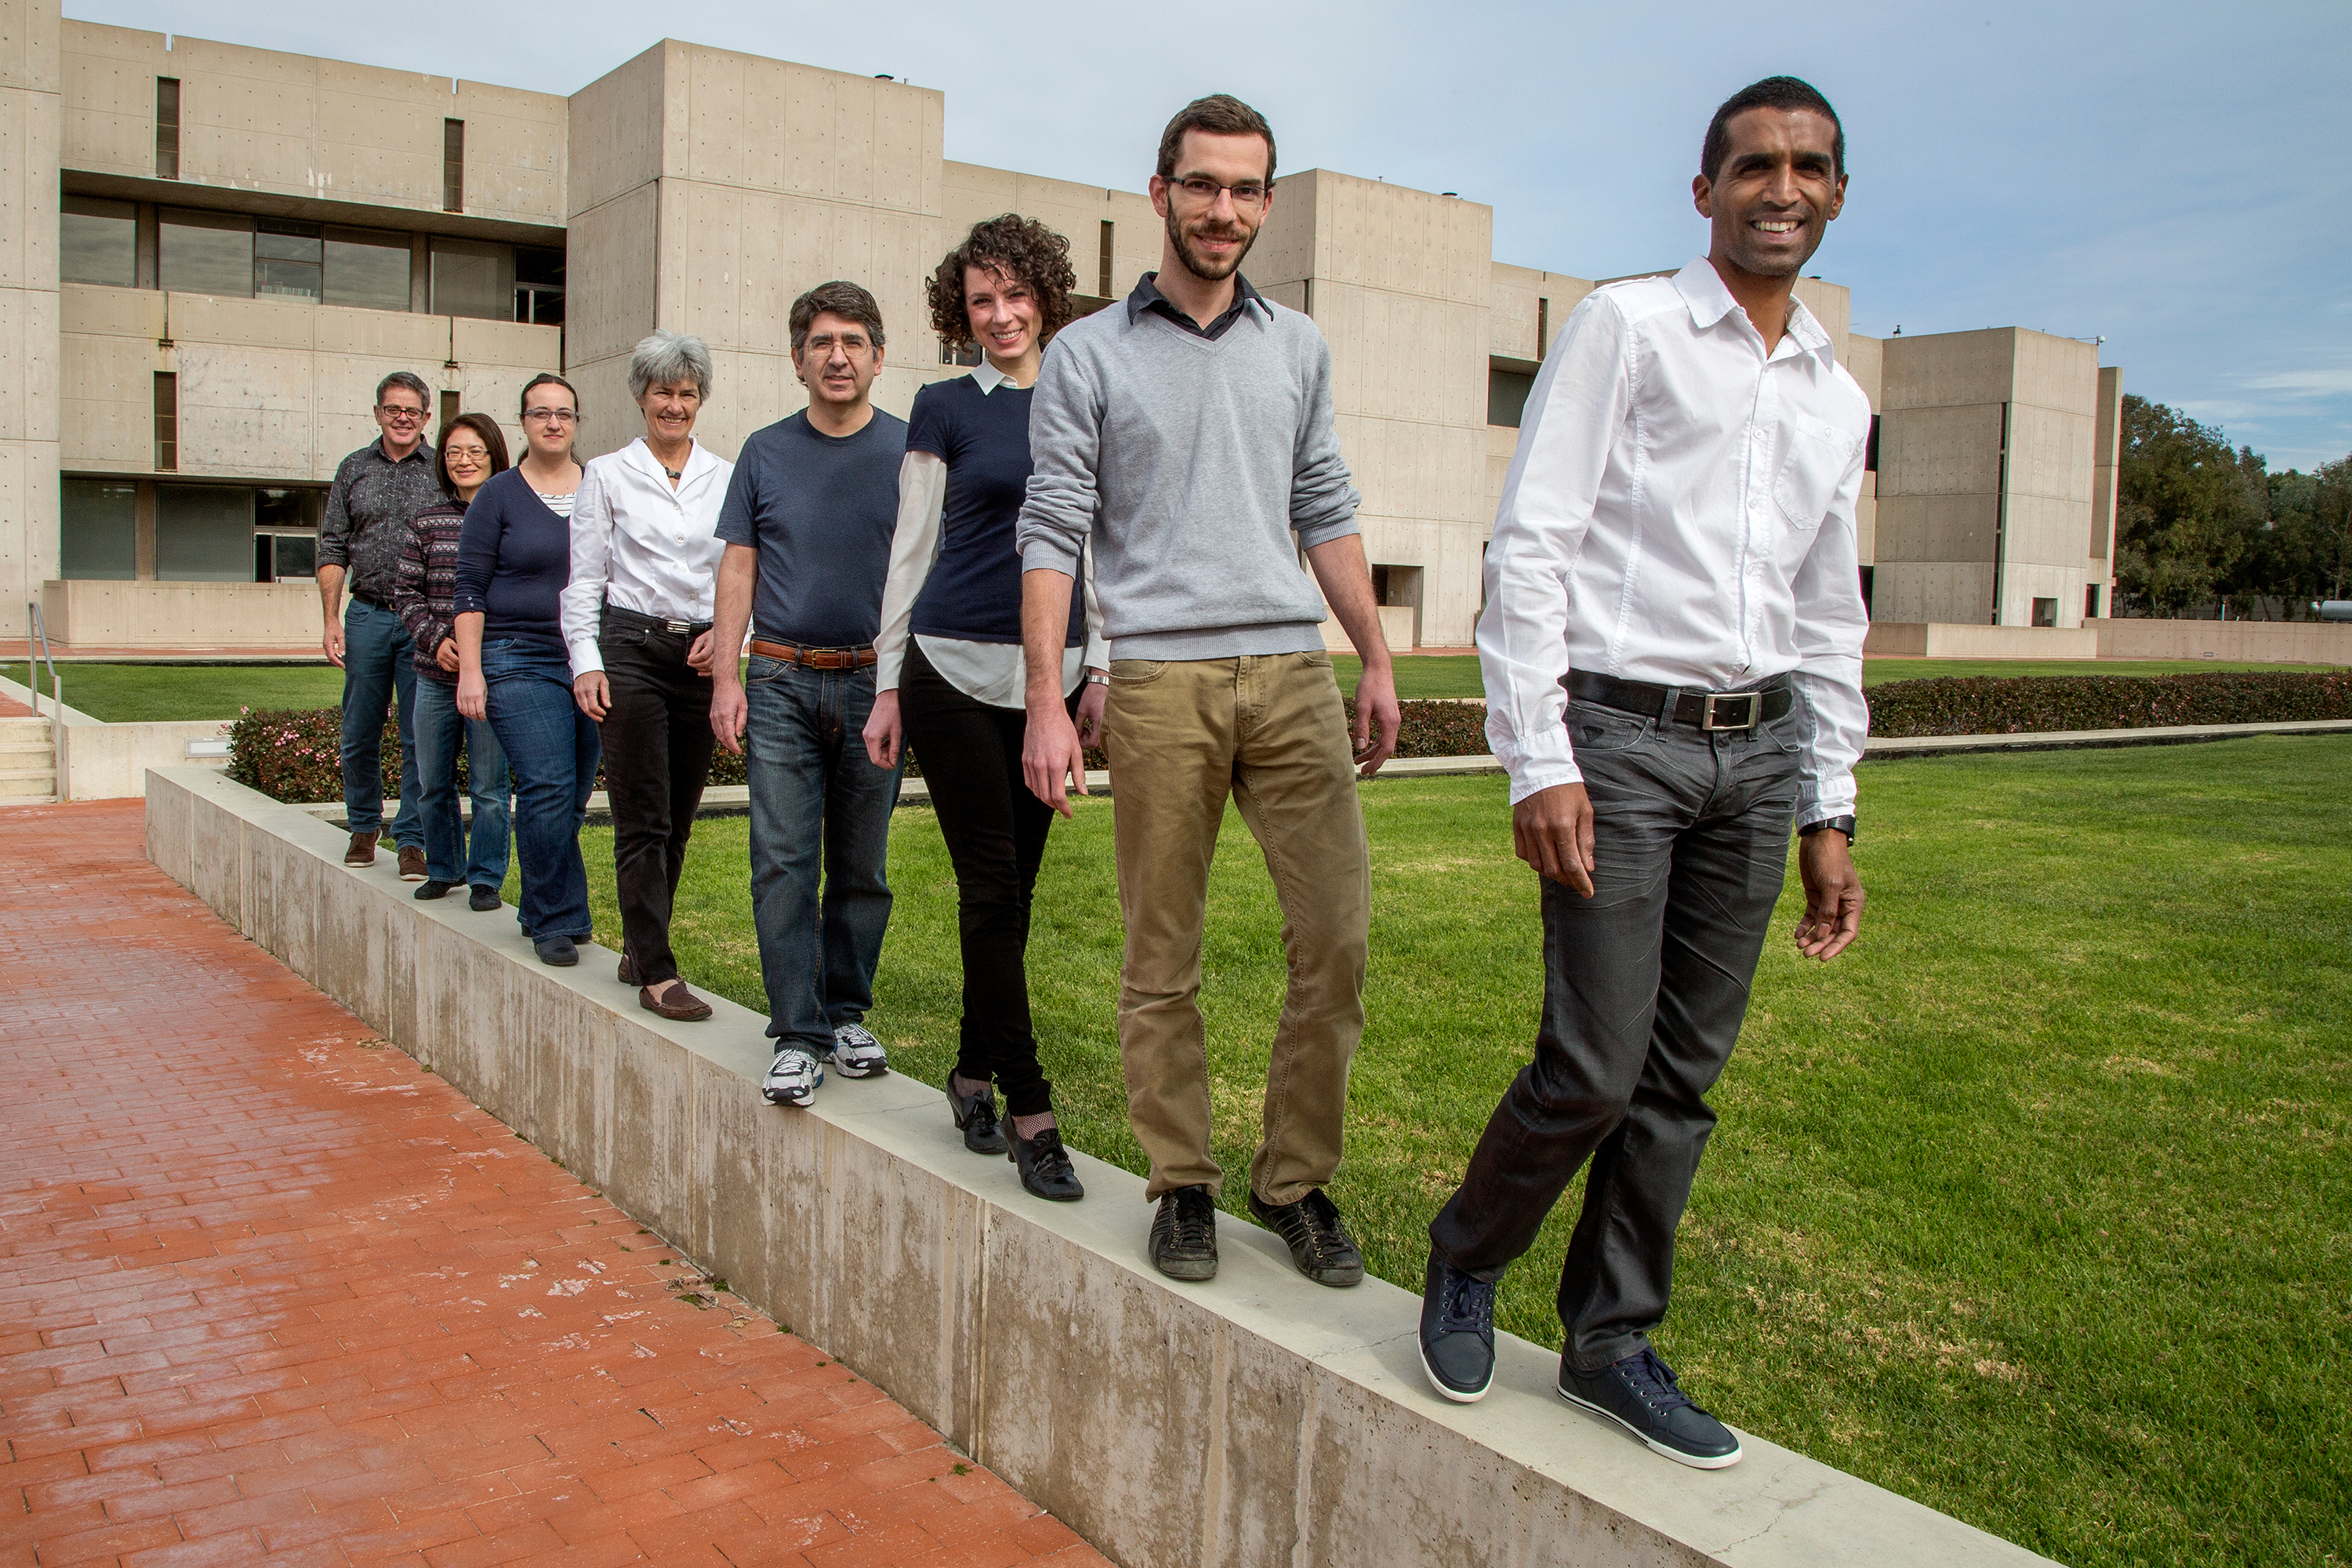 Researchers, from right: Steeve Bourane, Antoine Dalet, Stephanie Koch, Chris Padilla, Cathy Charles, Graziana Gatto, Tommie Velasquez and Martyn Goulding. Image: Courtesy of the Salk Institute for Biological Studies.